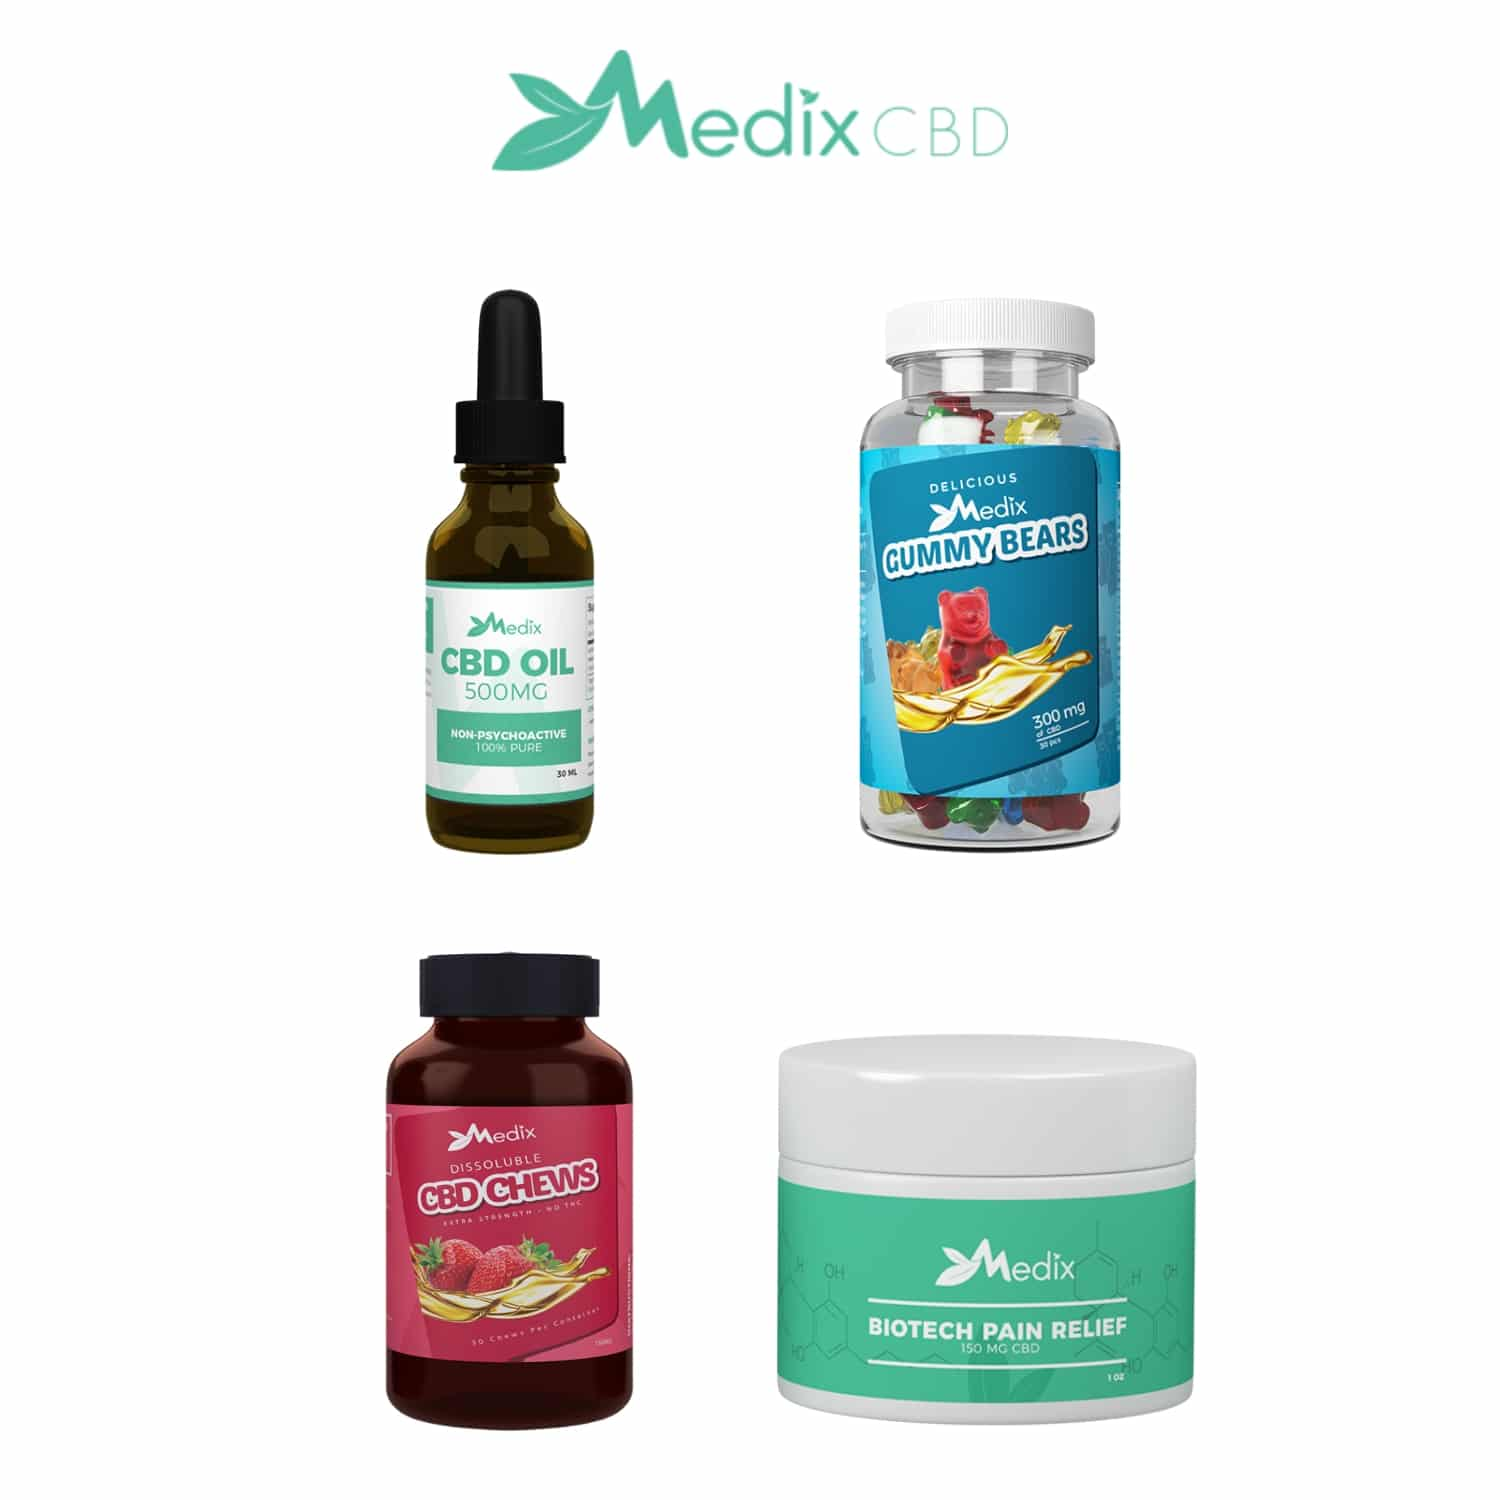 medix-cbd-product-display